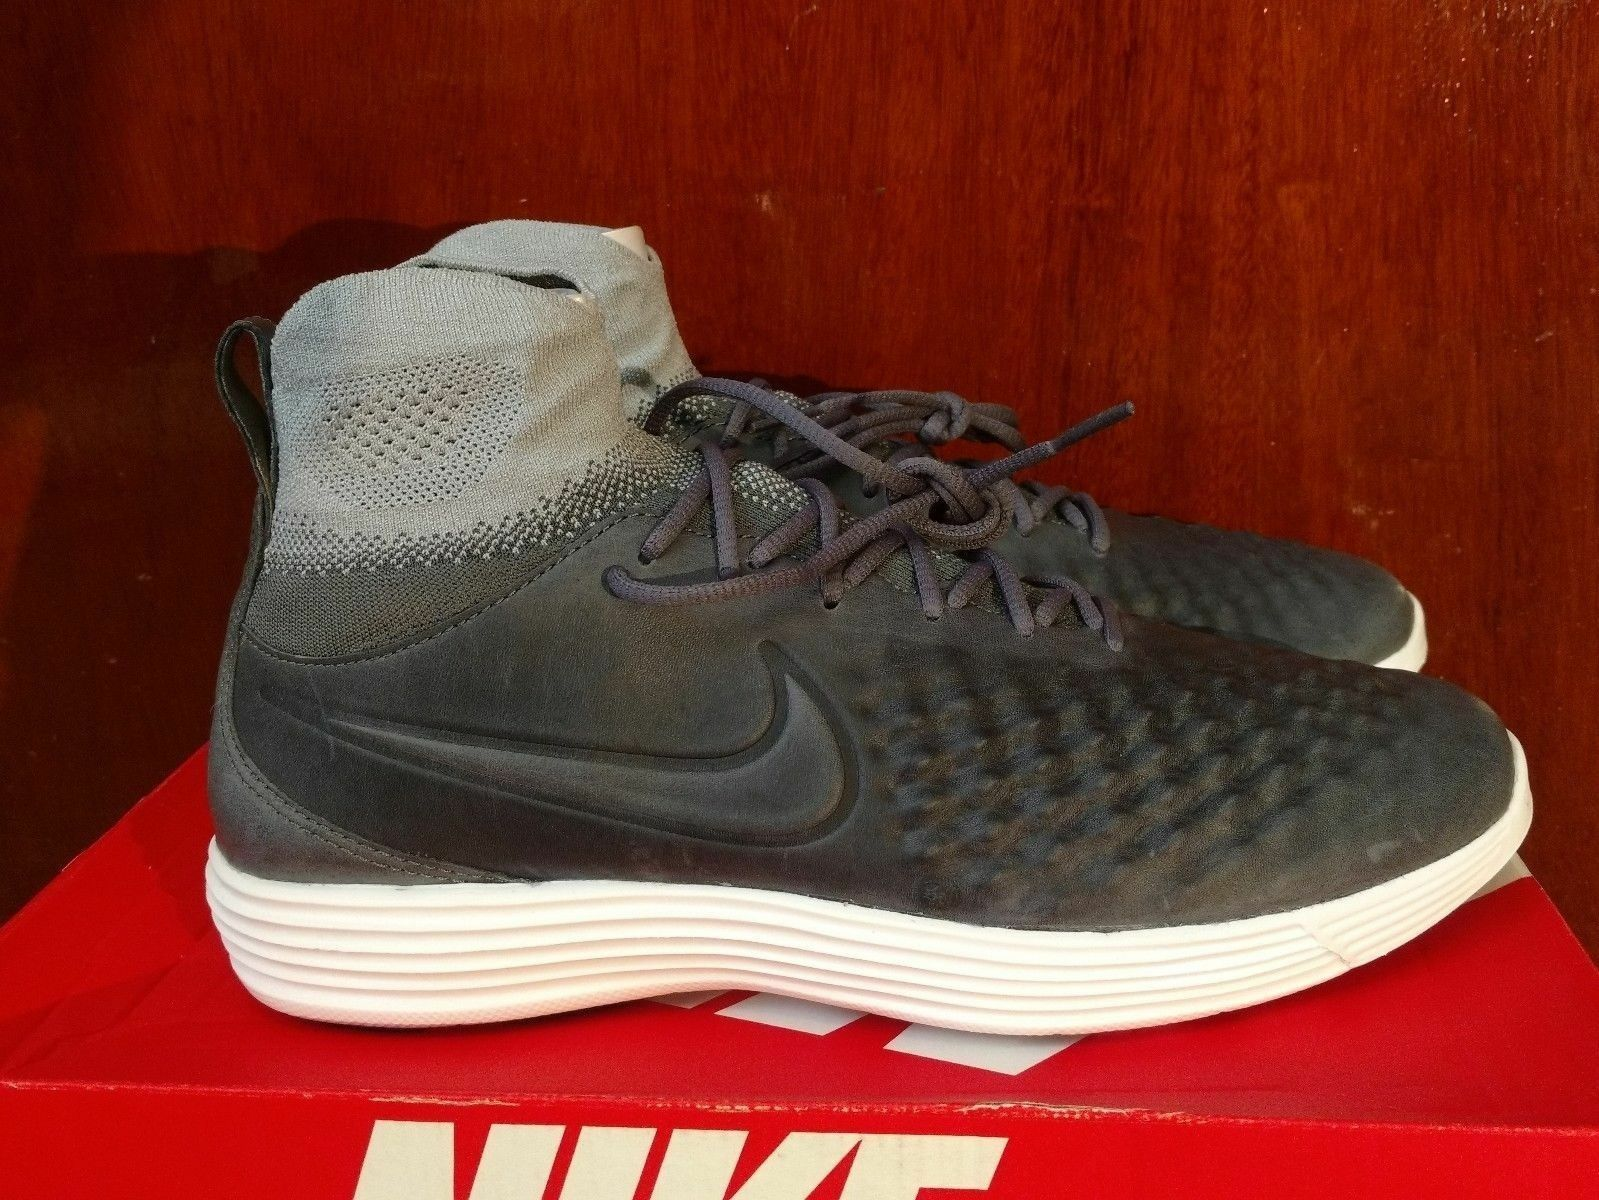 NIKE LUNAR MAGISTA II FK CROSS TRAINERS DARK GREY DARK GREY WOLF GREY 852614 002